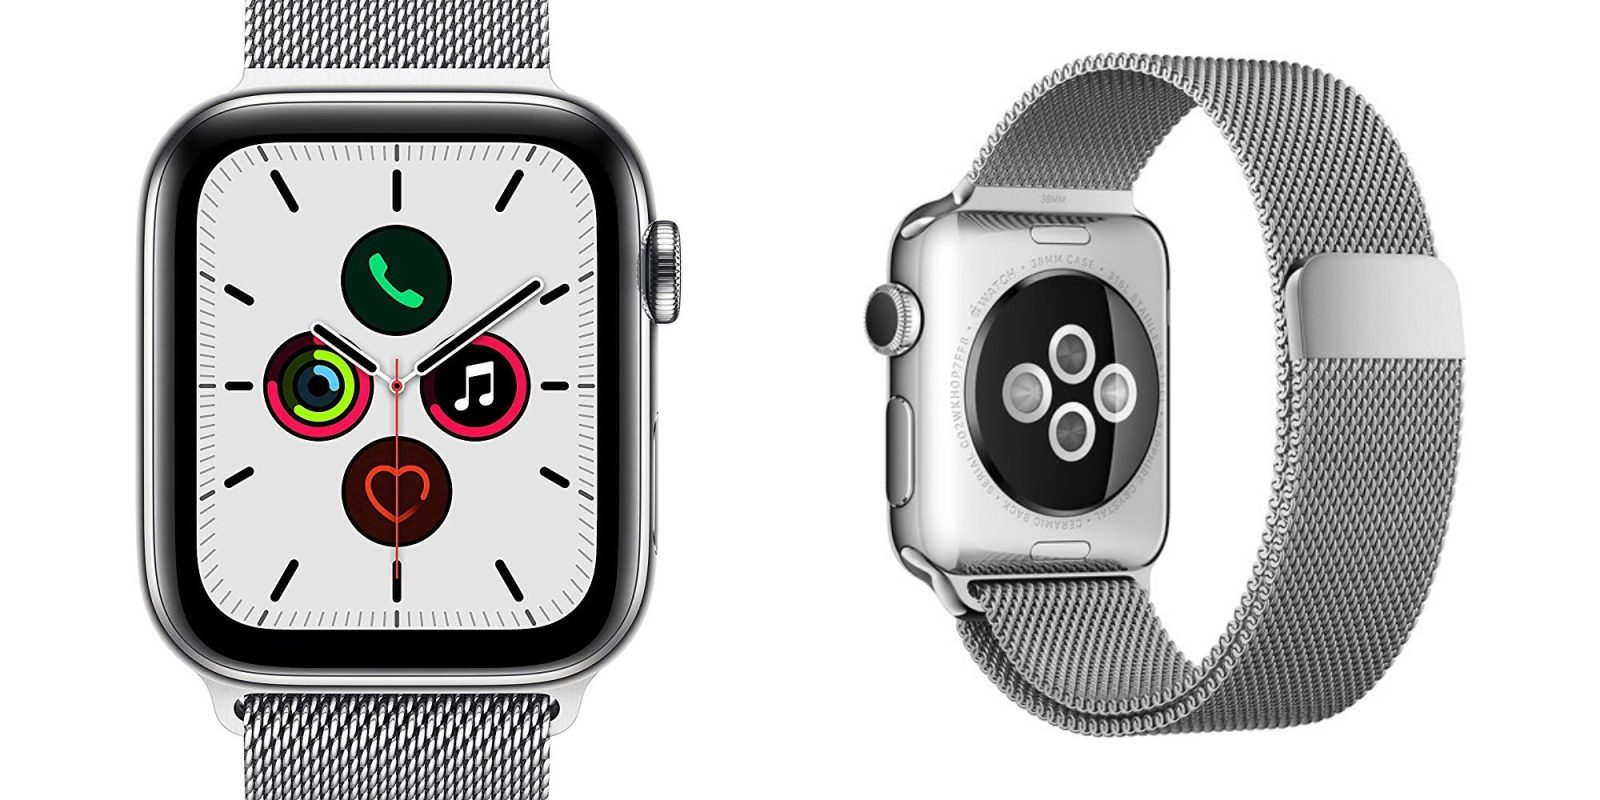 Amazon has slashed the official Apple Watch Milanese Loop band down to $85